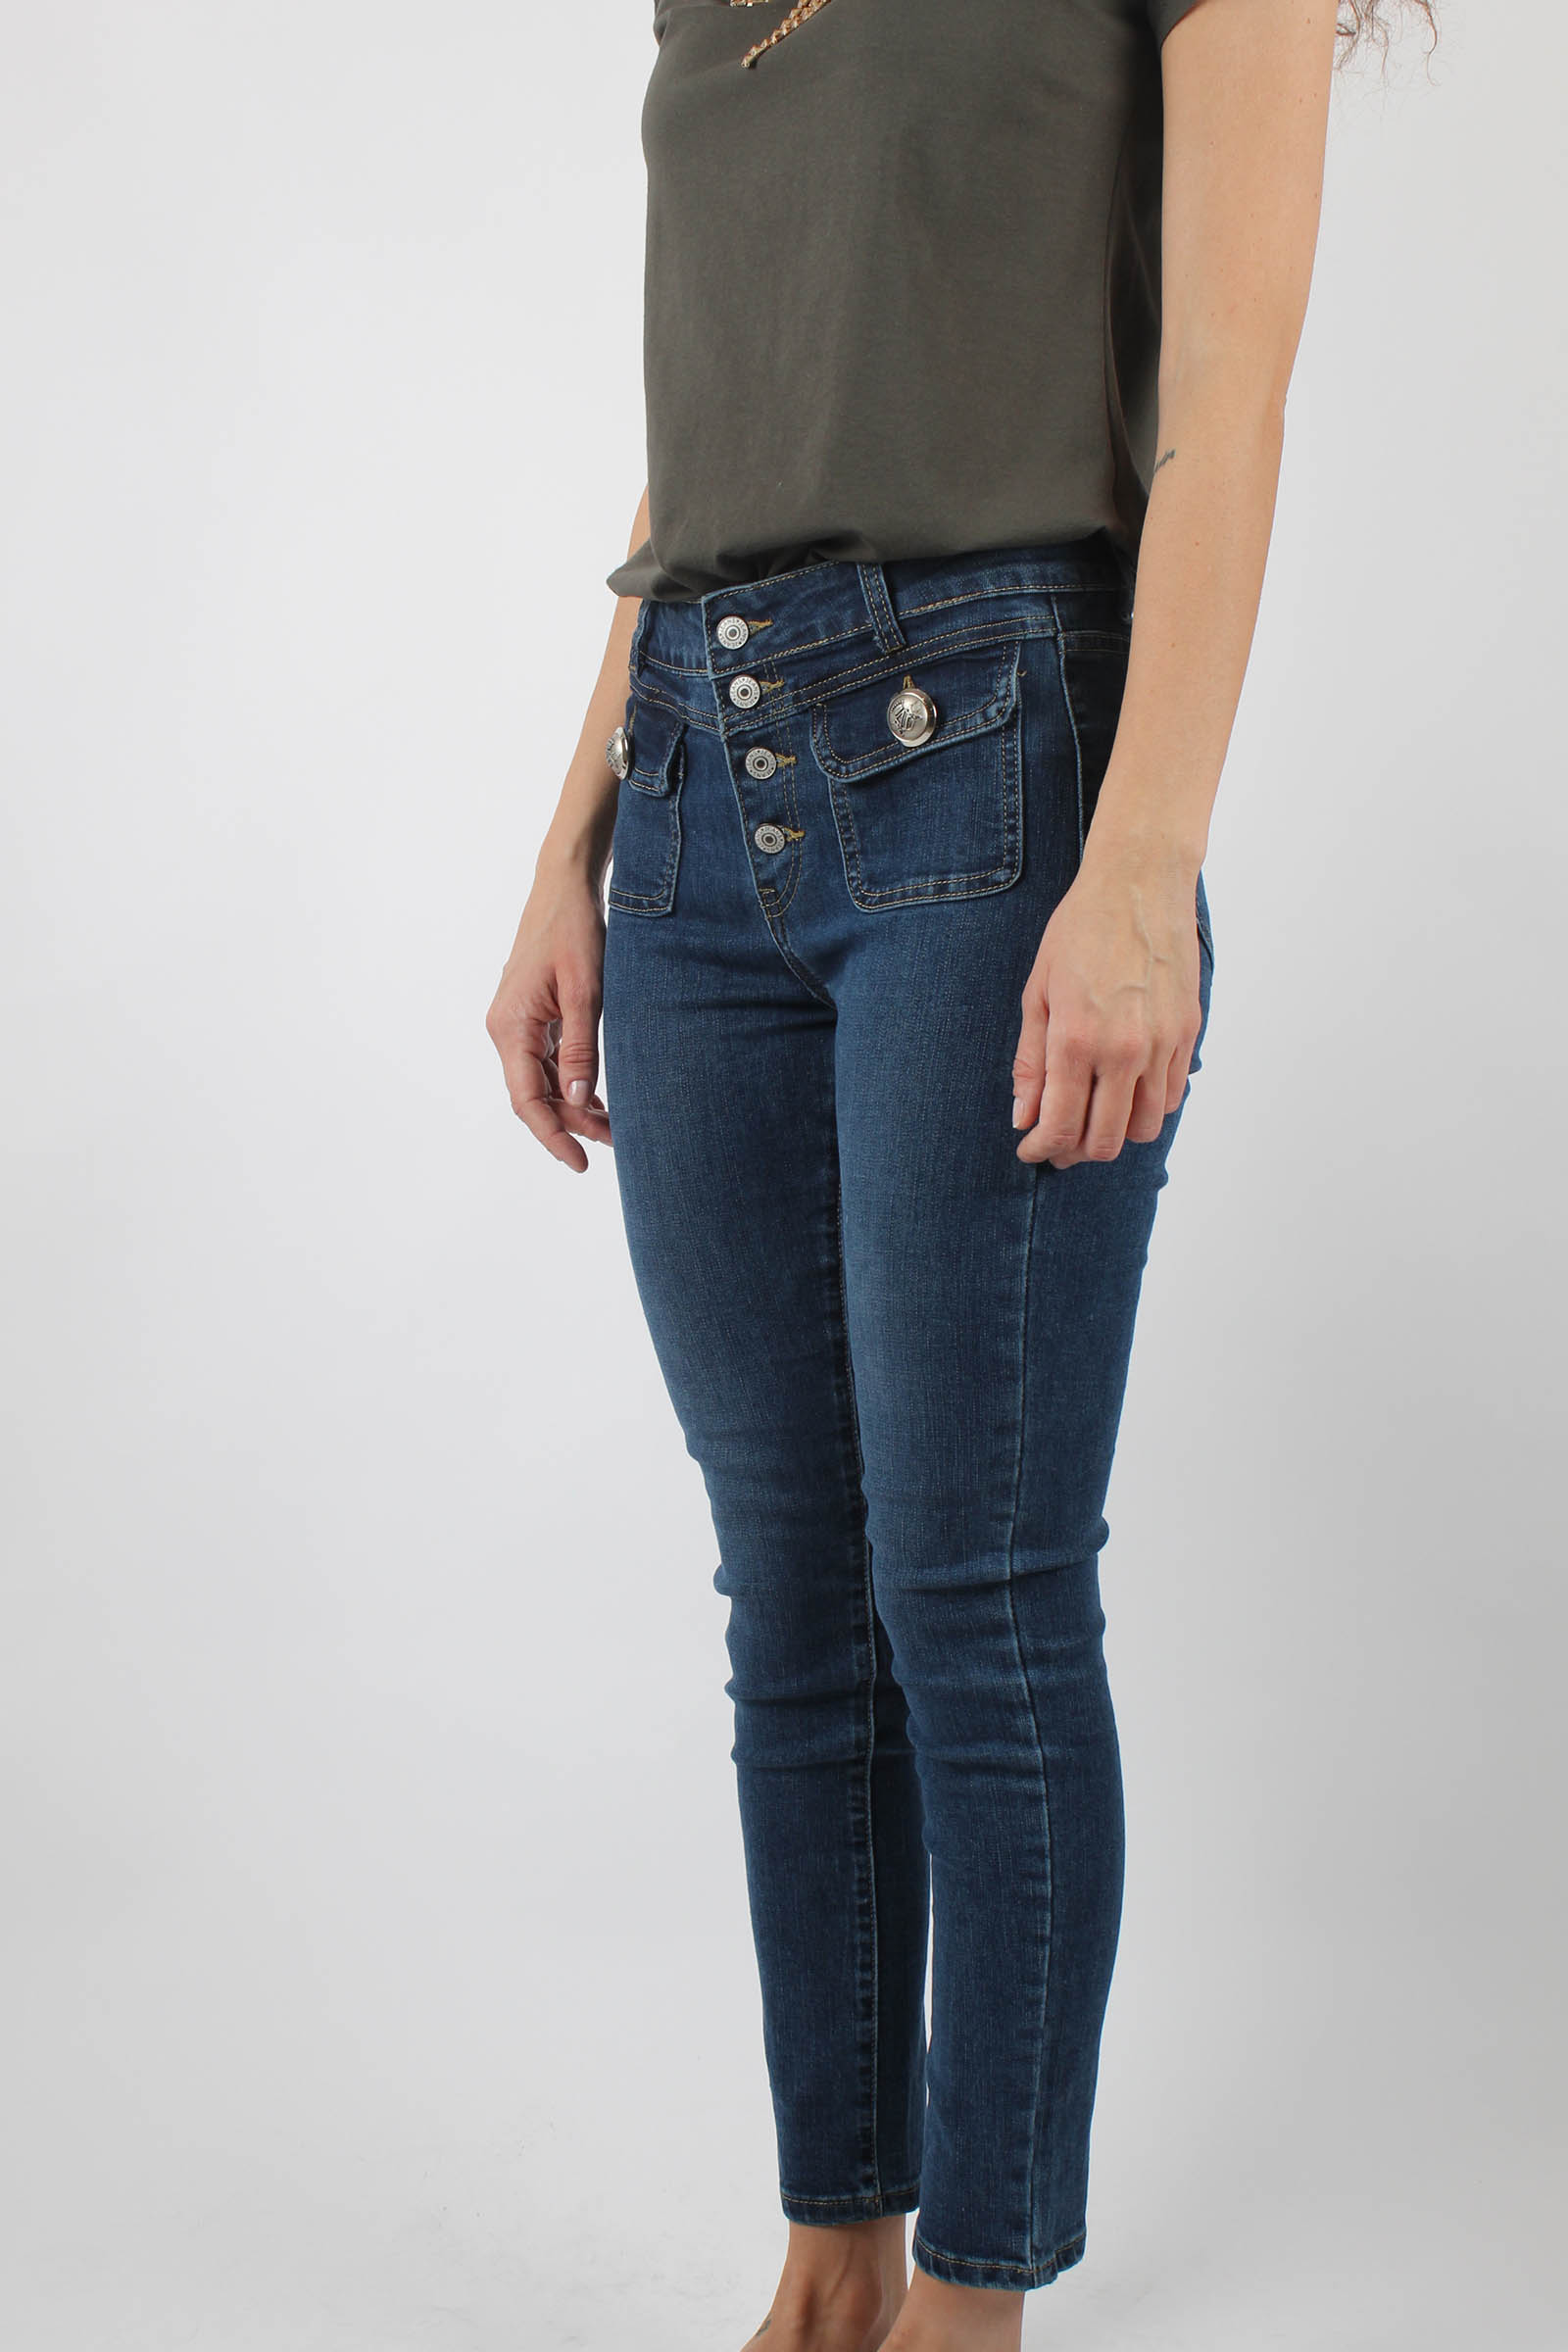 FANFRELUCHES      JEANS ARMY1